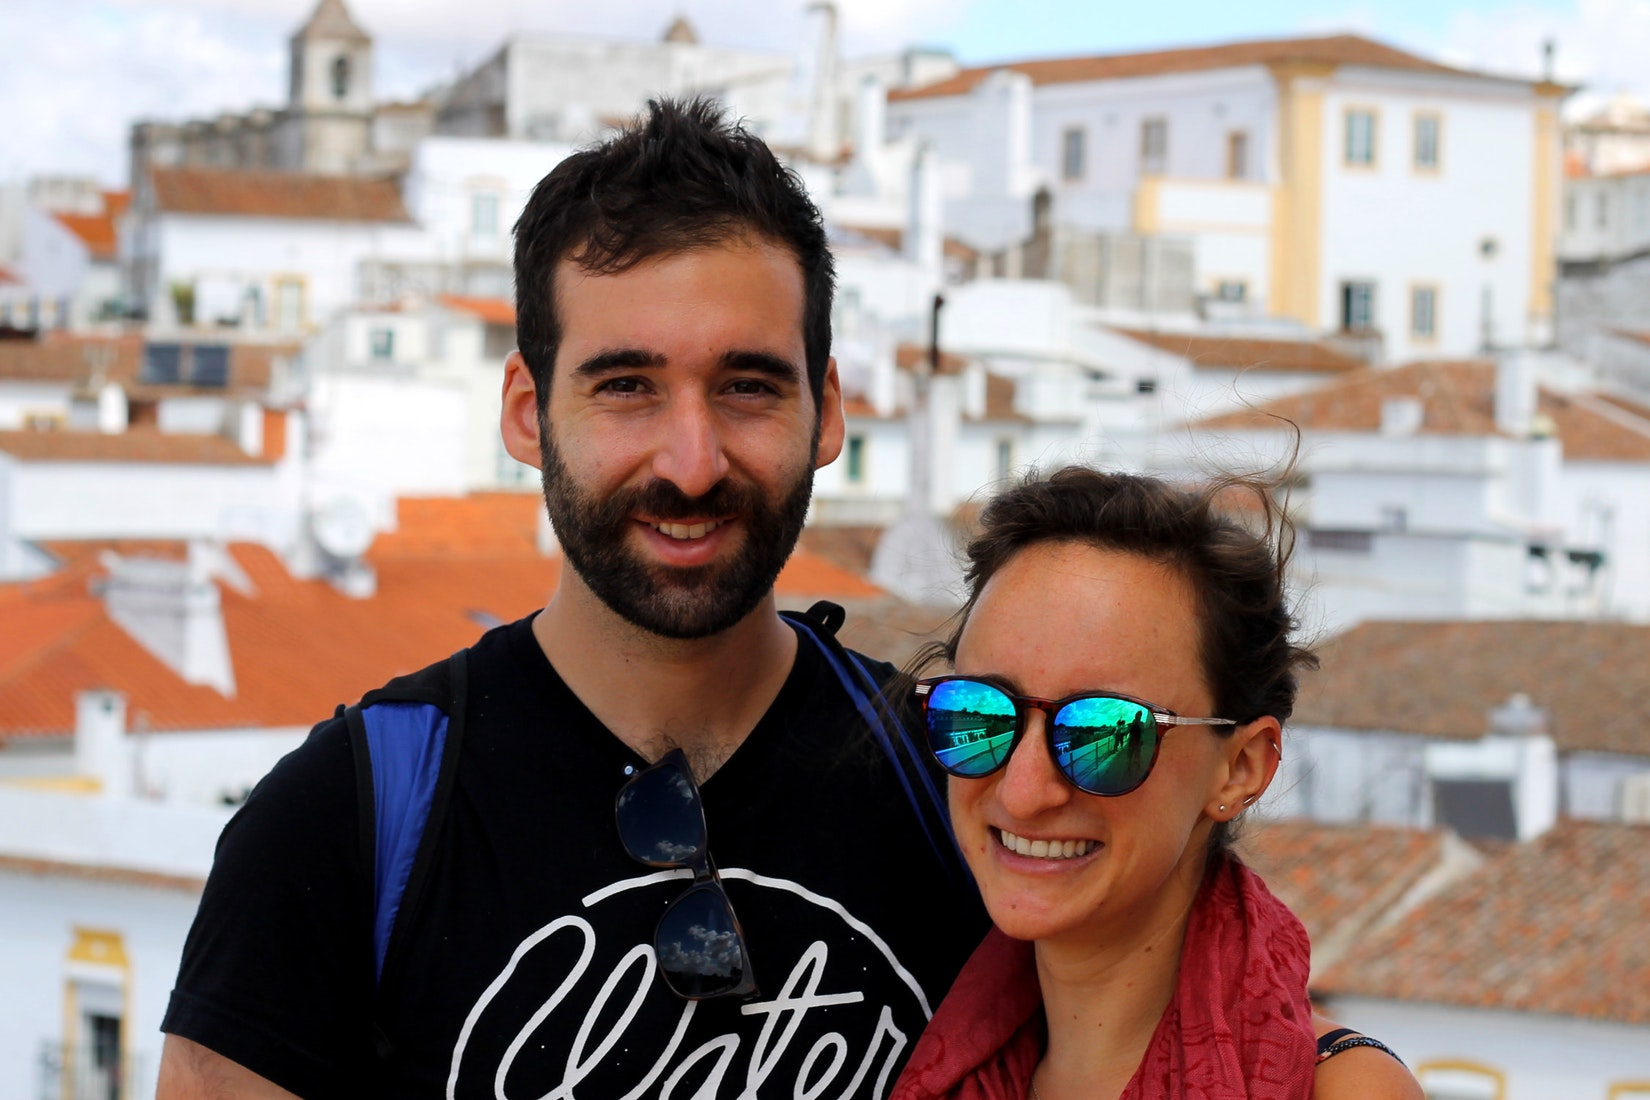 Boyfriend and girlfriend smiling for a photo in Evora, Portugal